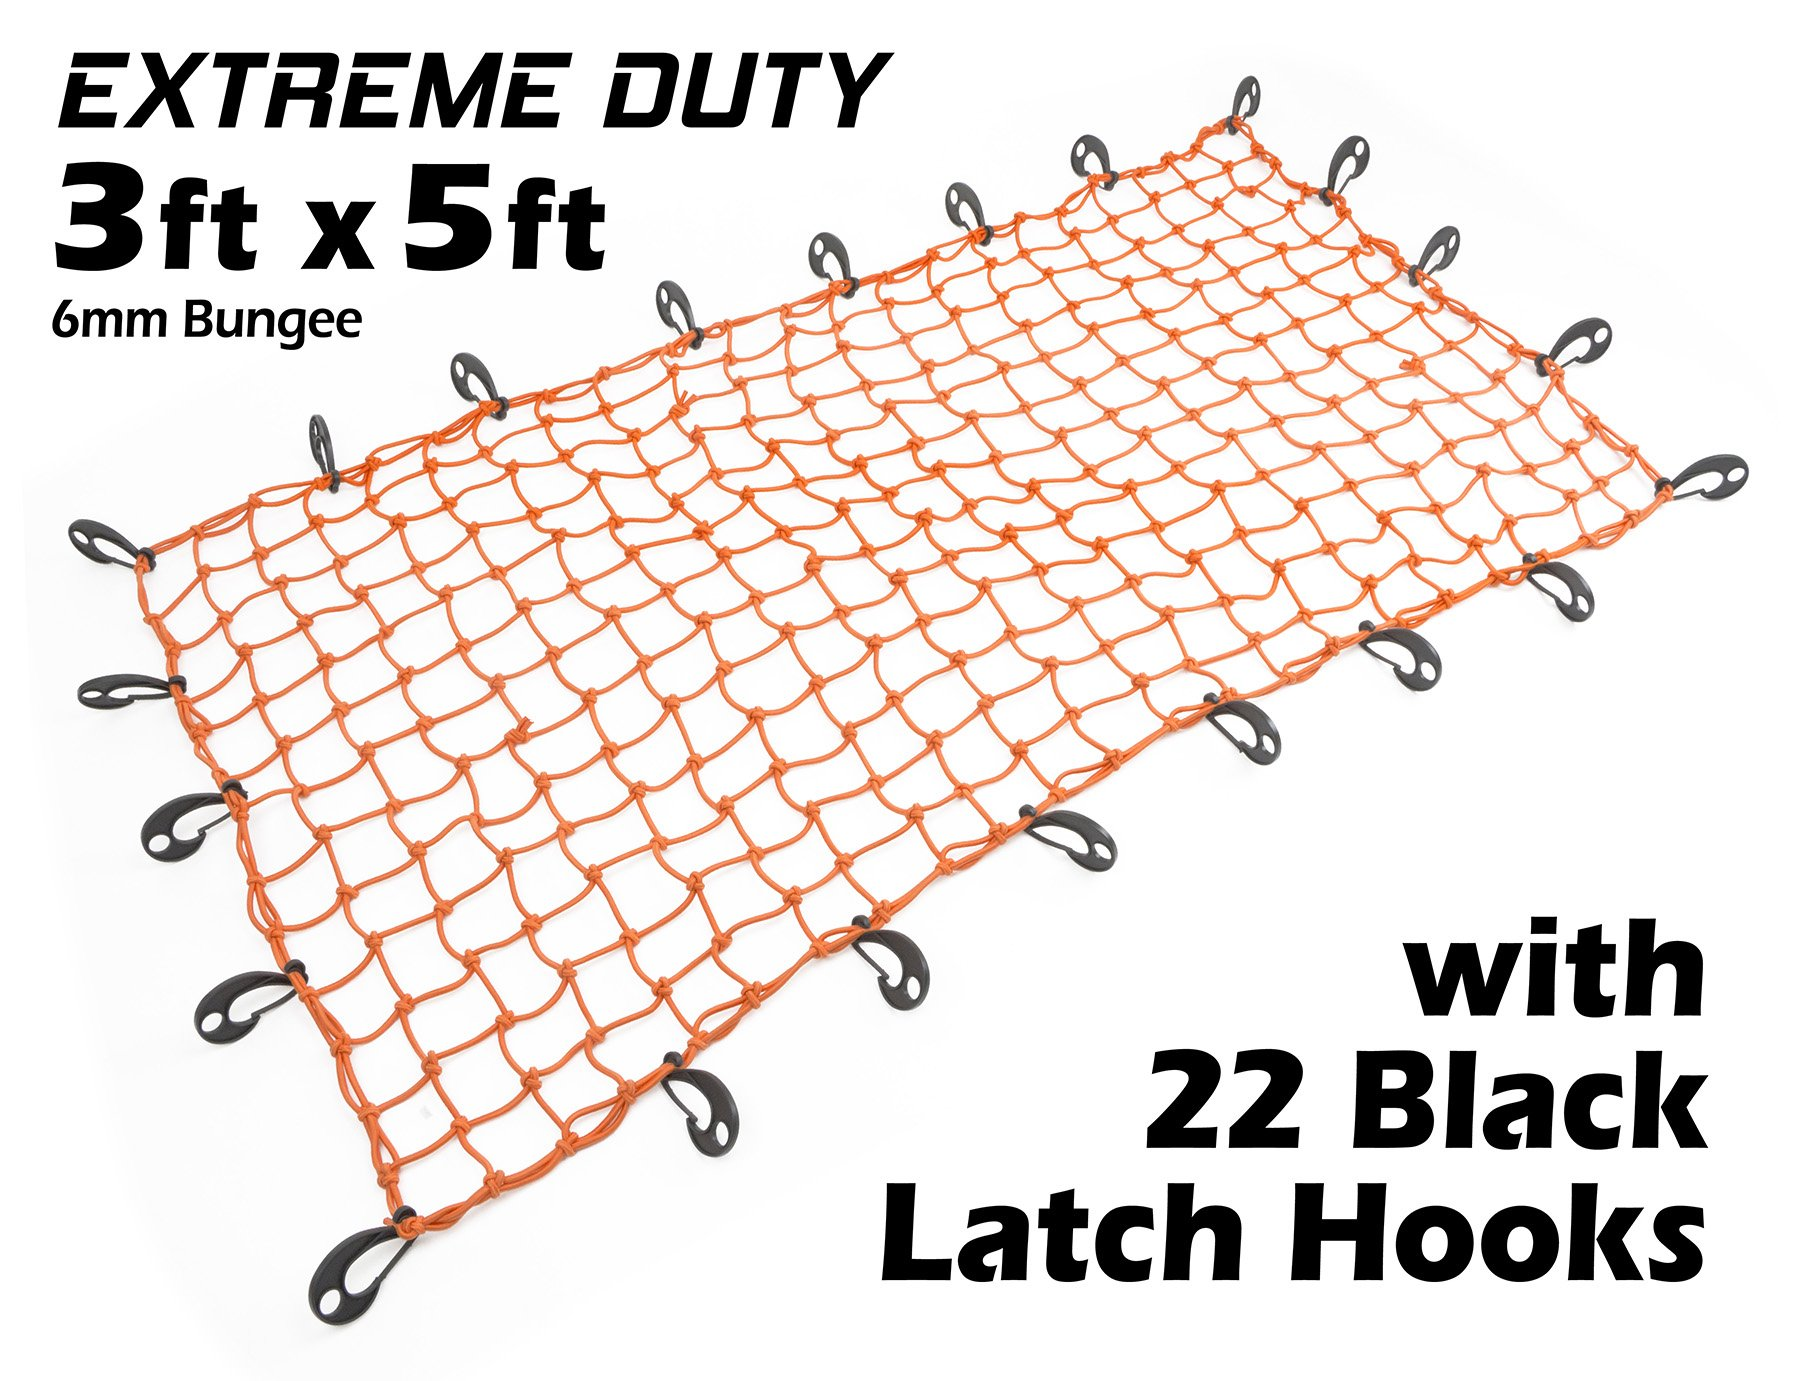 3in x 3in Mesh and Rubber-Tipped Super Strong Metal Hooks 15in x 30in PowerTye Mfg EXTREME Duty Cargo Net with 6mm Premium Elastic Black